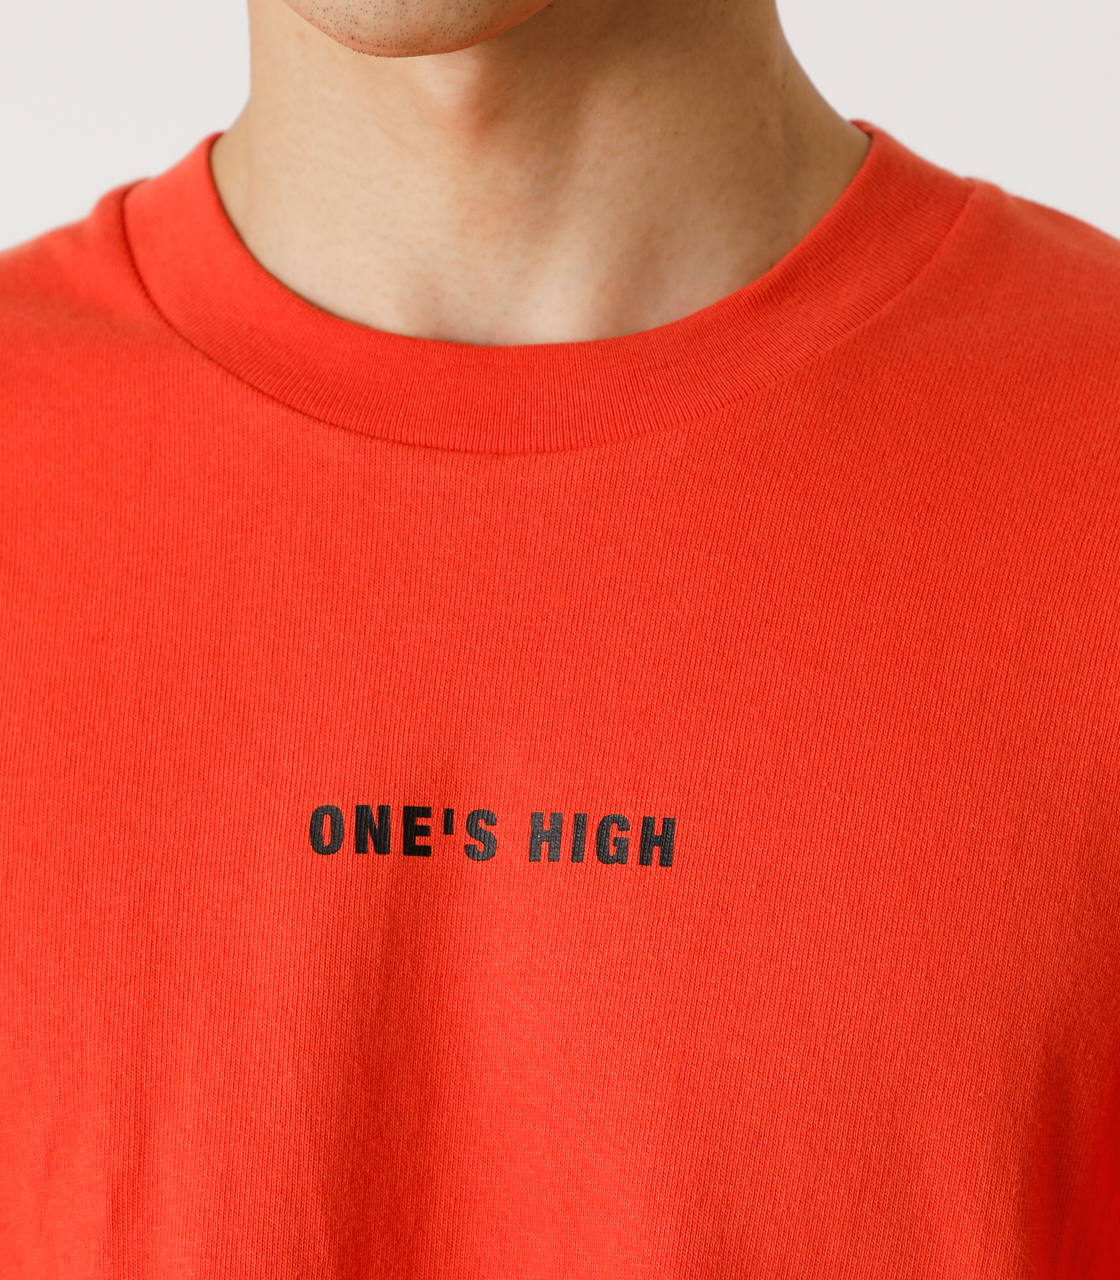 ONE'S HIGH LONG TEE/ワンズハイロングTシャツ 詳細画像 D/ORG 9